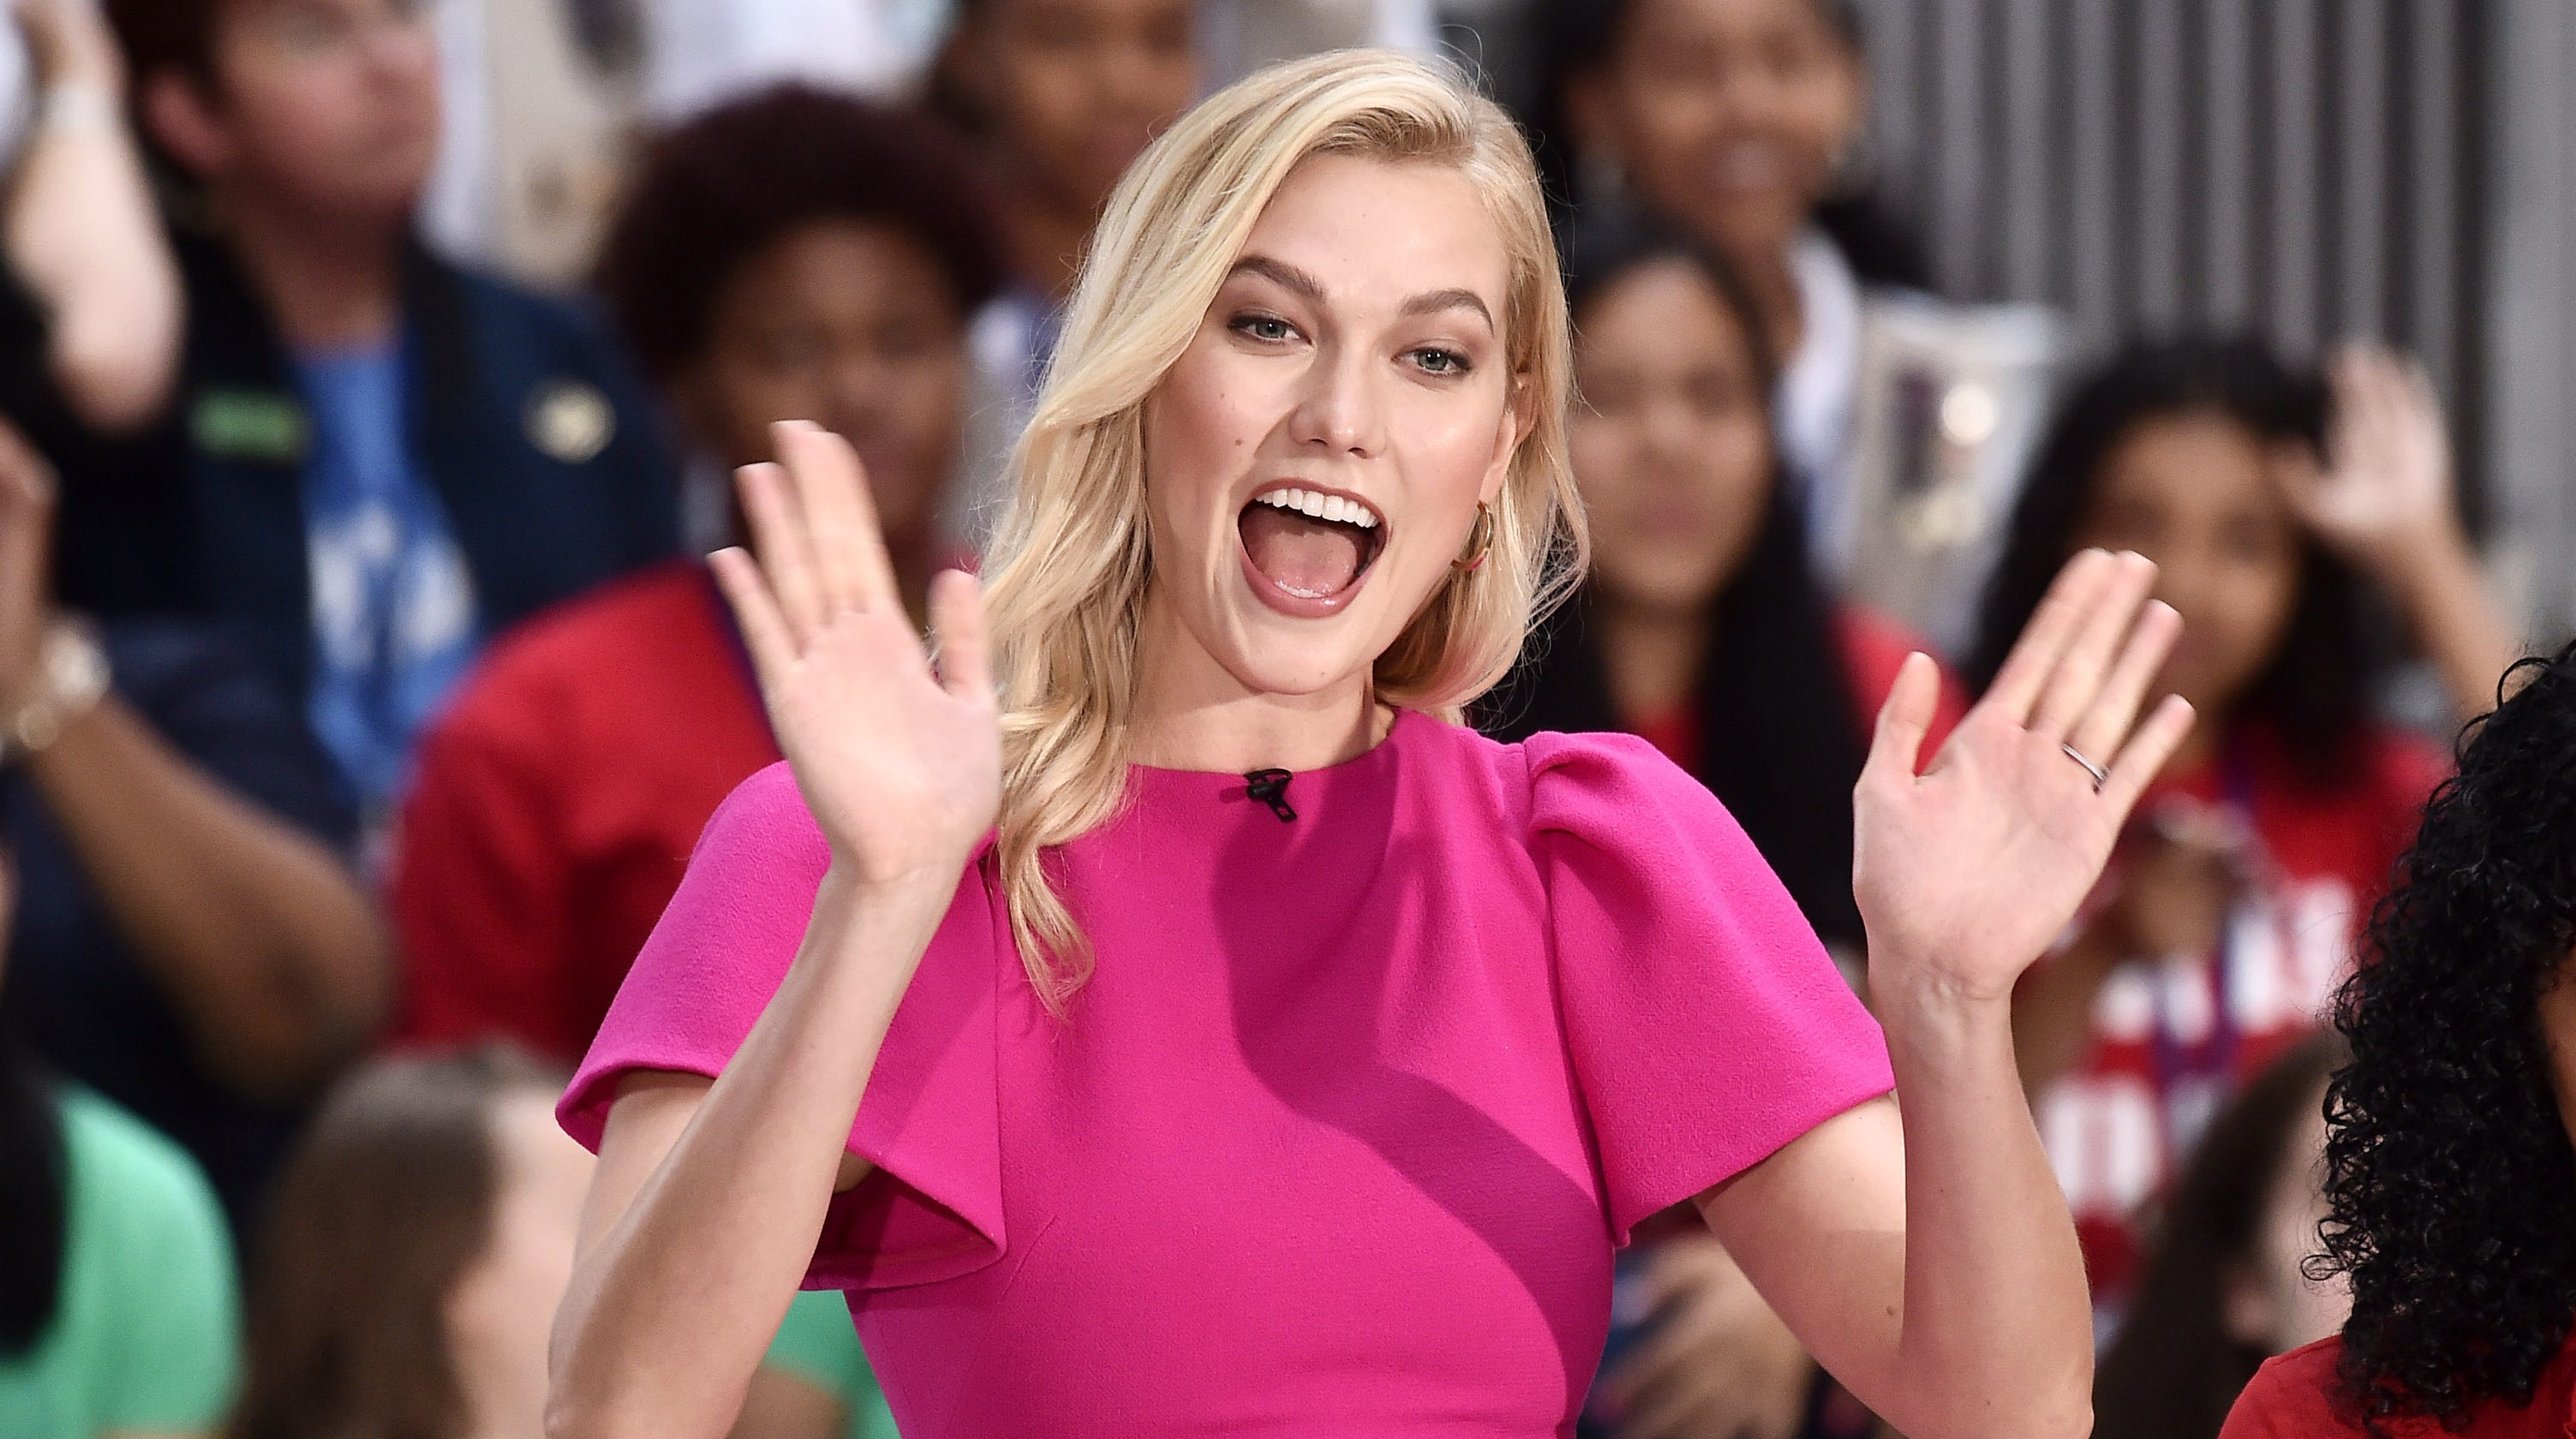 Karlie Kloss Weds Joshua Kushner Younger Brother Of Jared Kushner